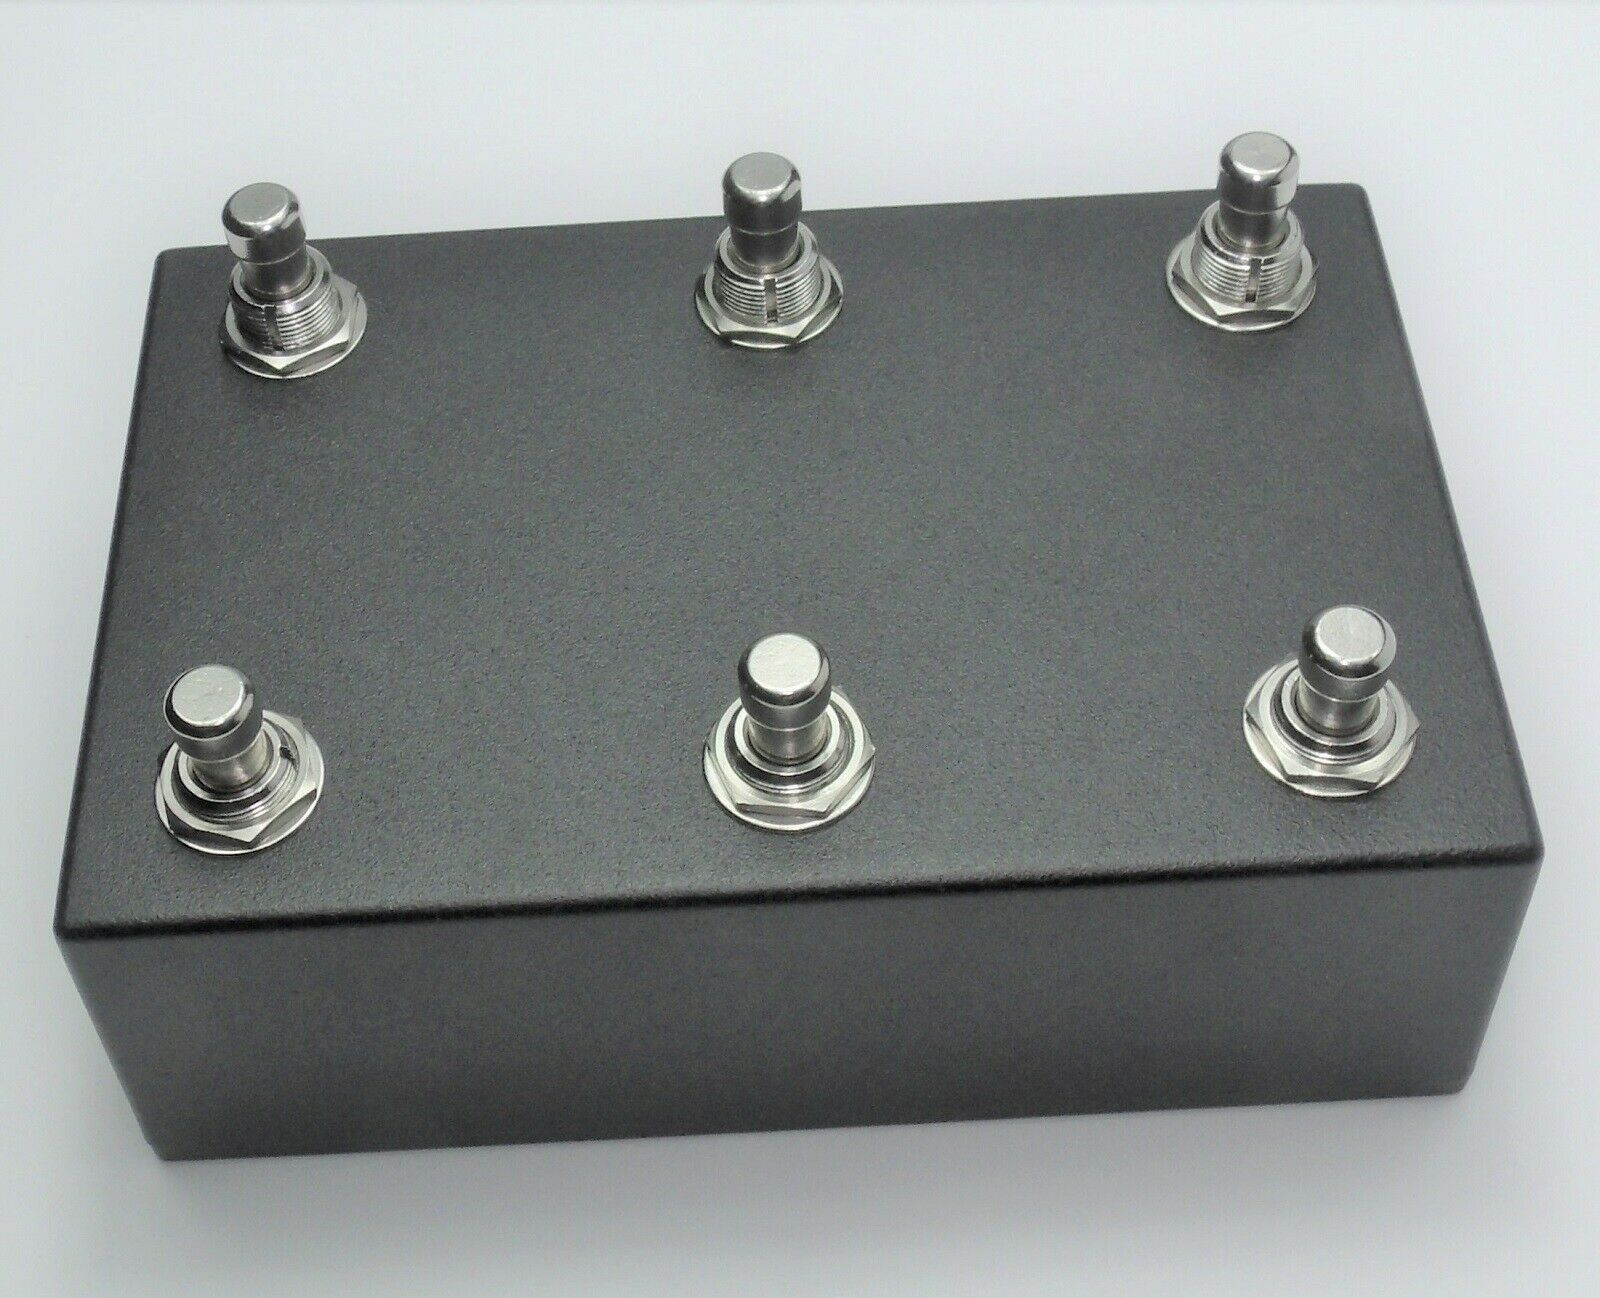 FS3-X2 Six button footswitch pedal for Morningstar FX MC6 and others dual FS3X